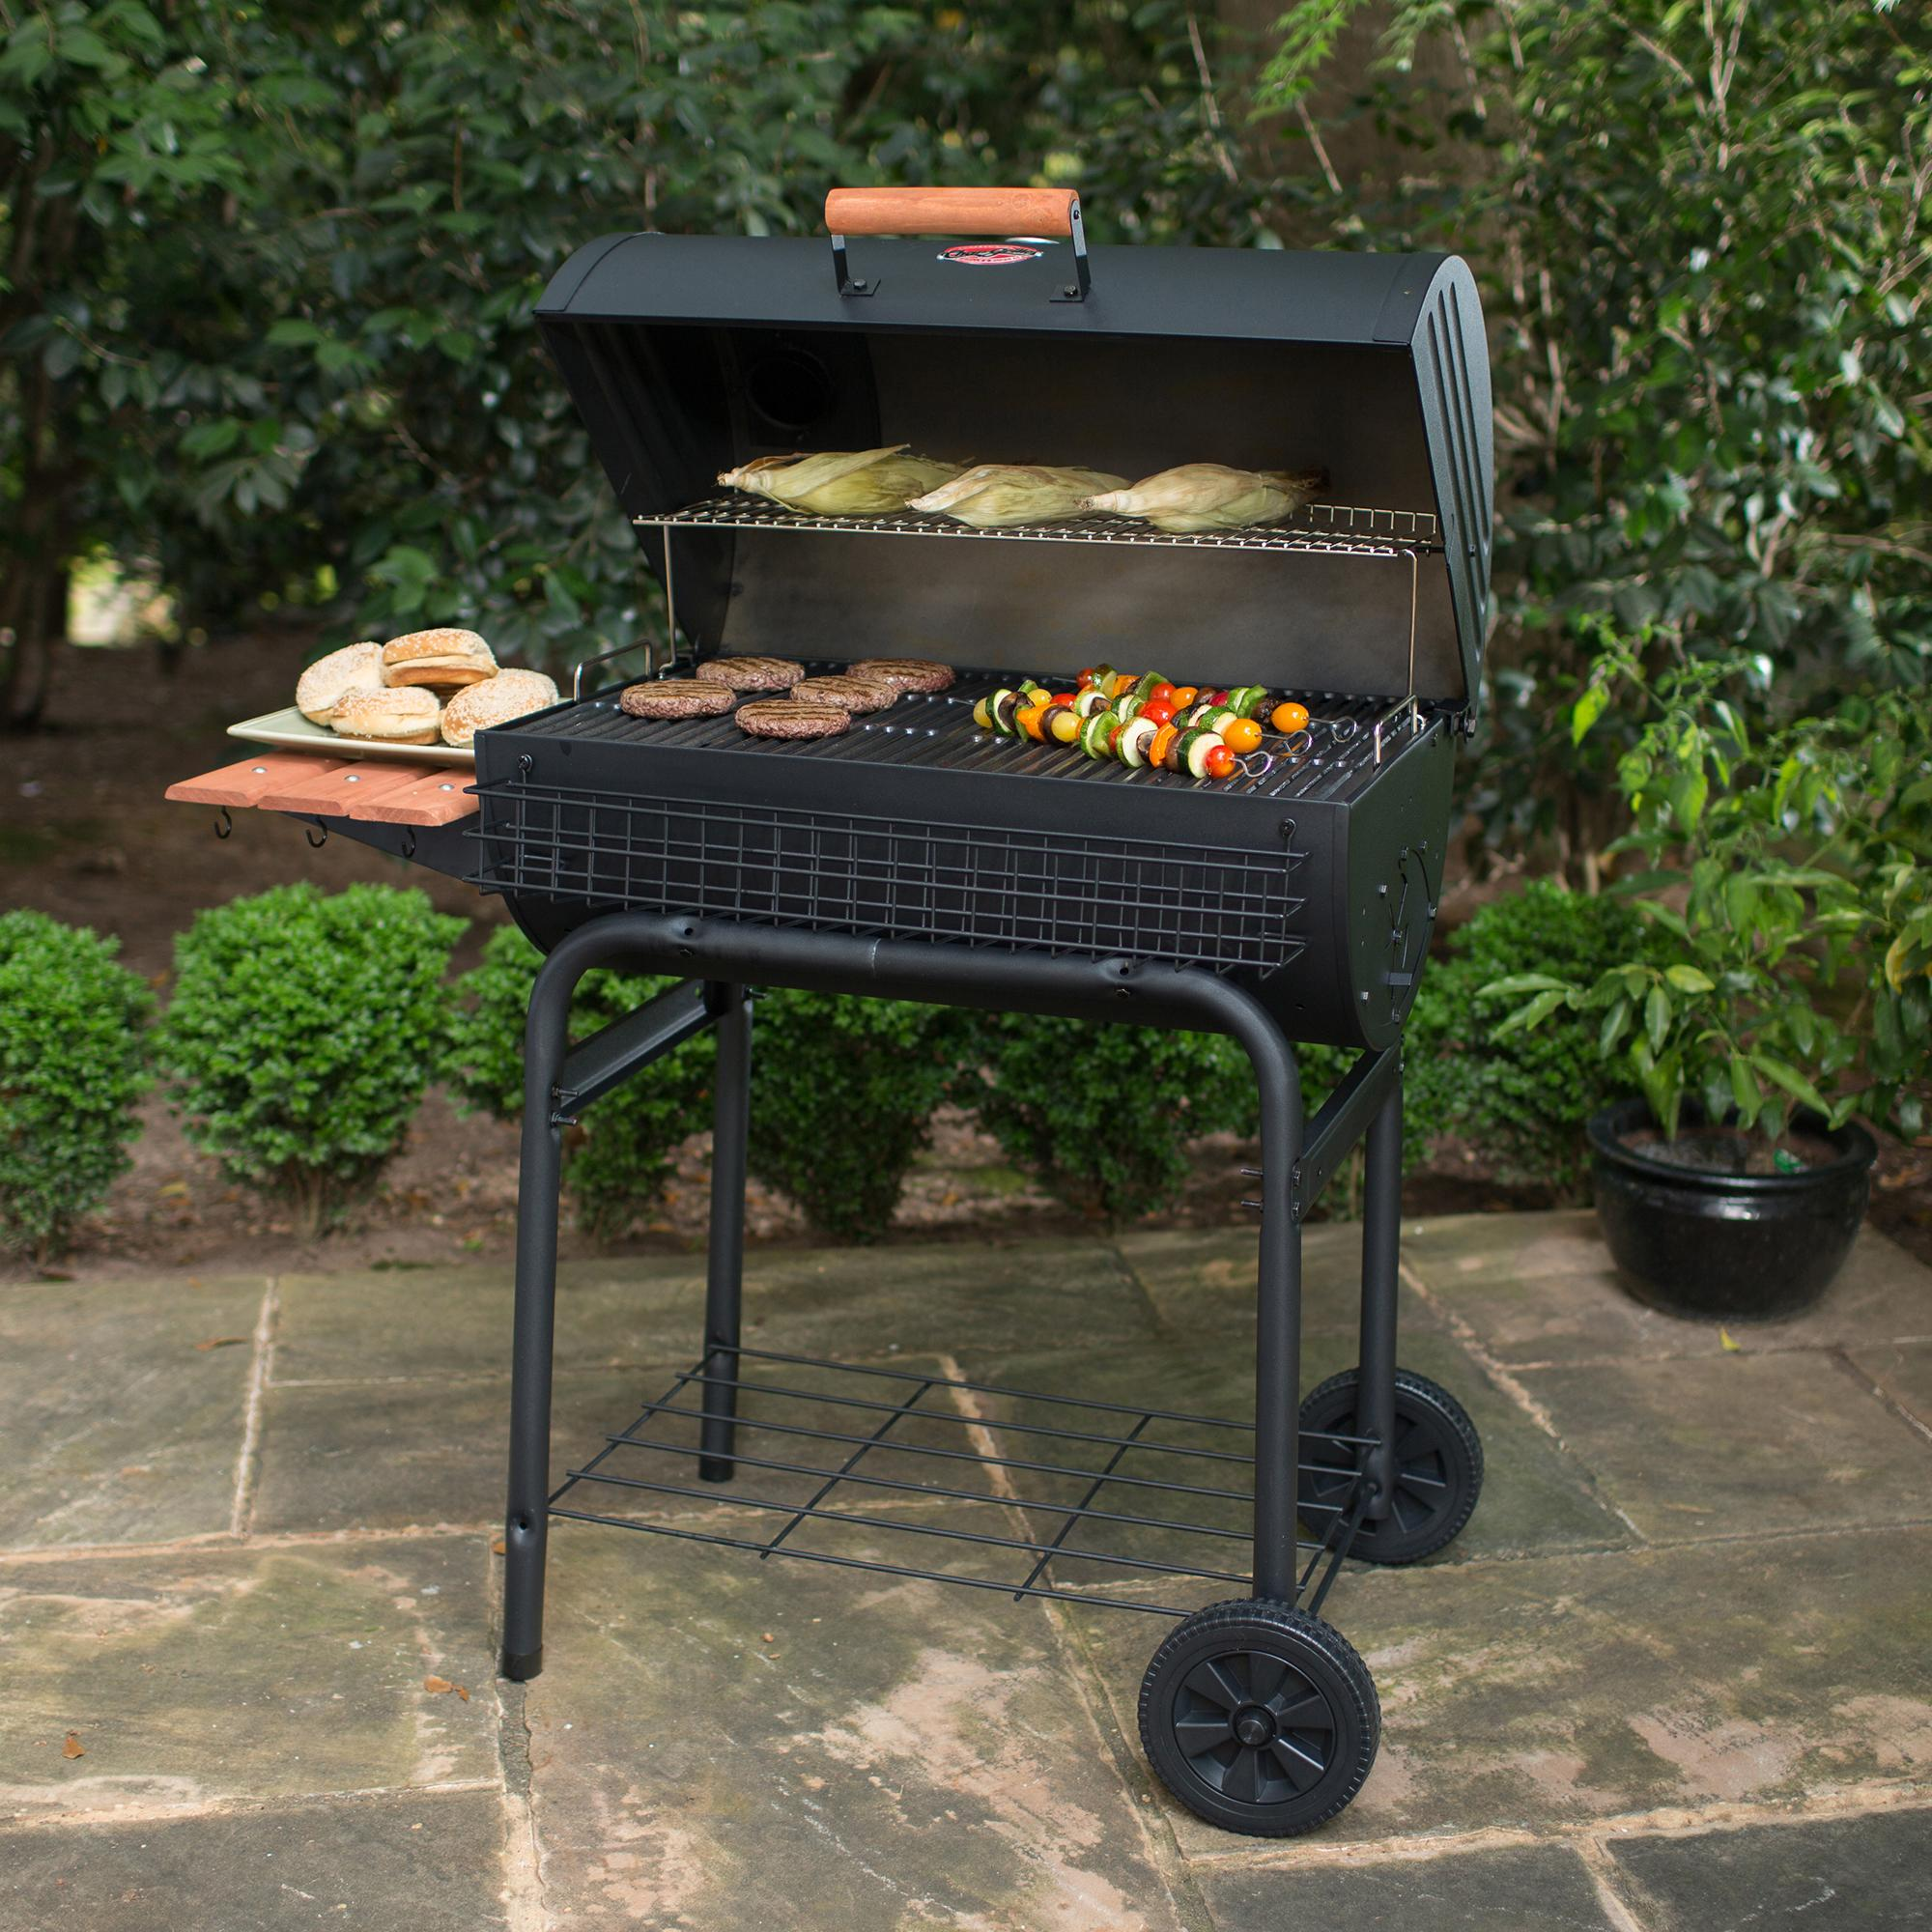 charcoal grill smoker barbecue weber bbq heavy duty steel. Black Bedroom Furniture Sets. Home Design Ideas